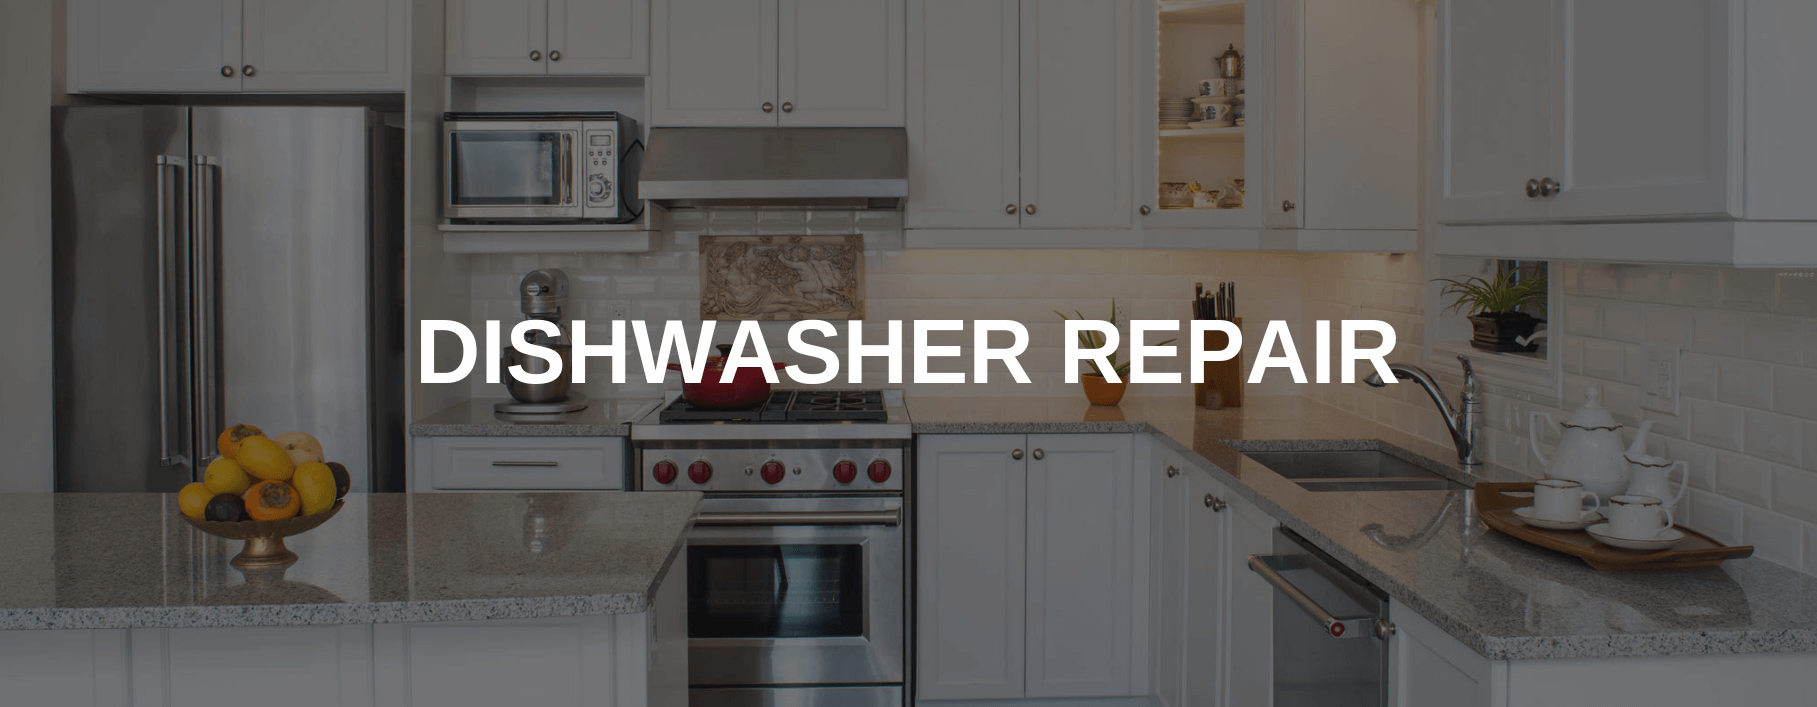 dishwasher repair peoria